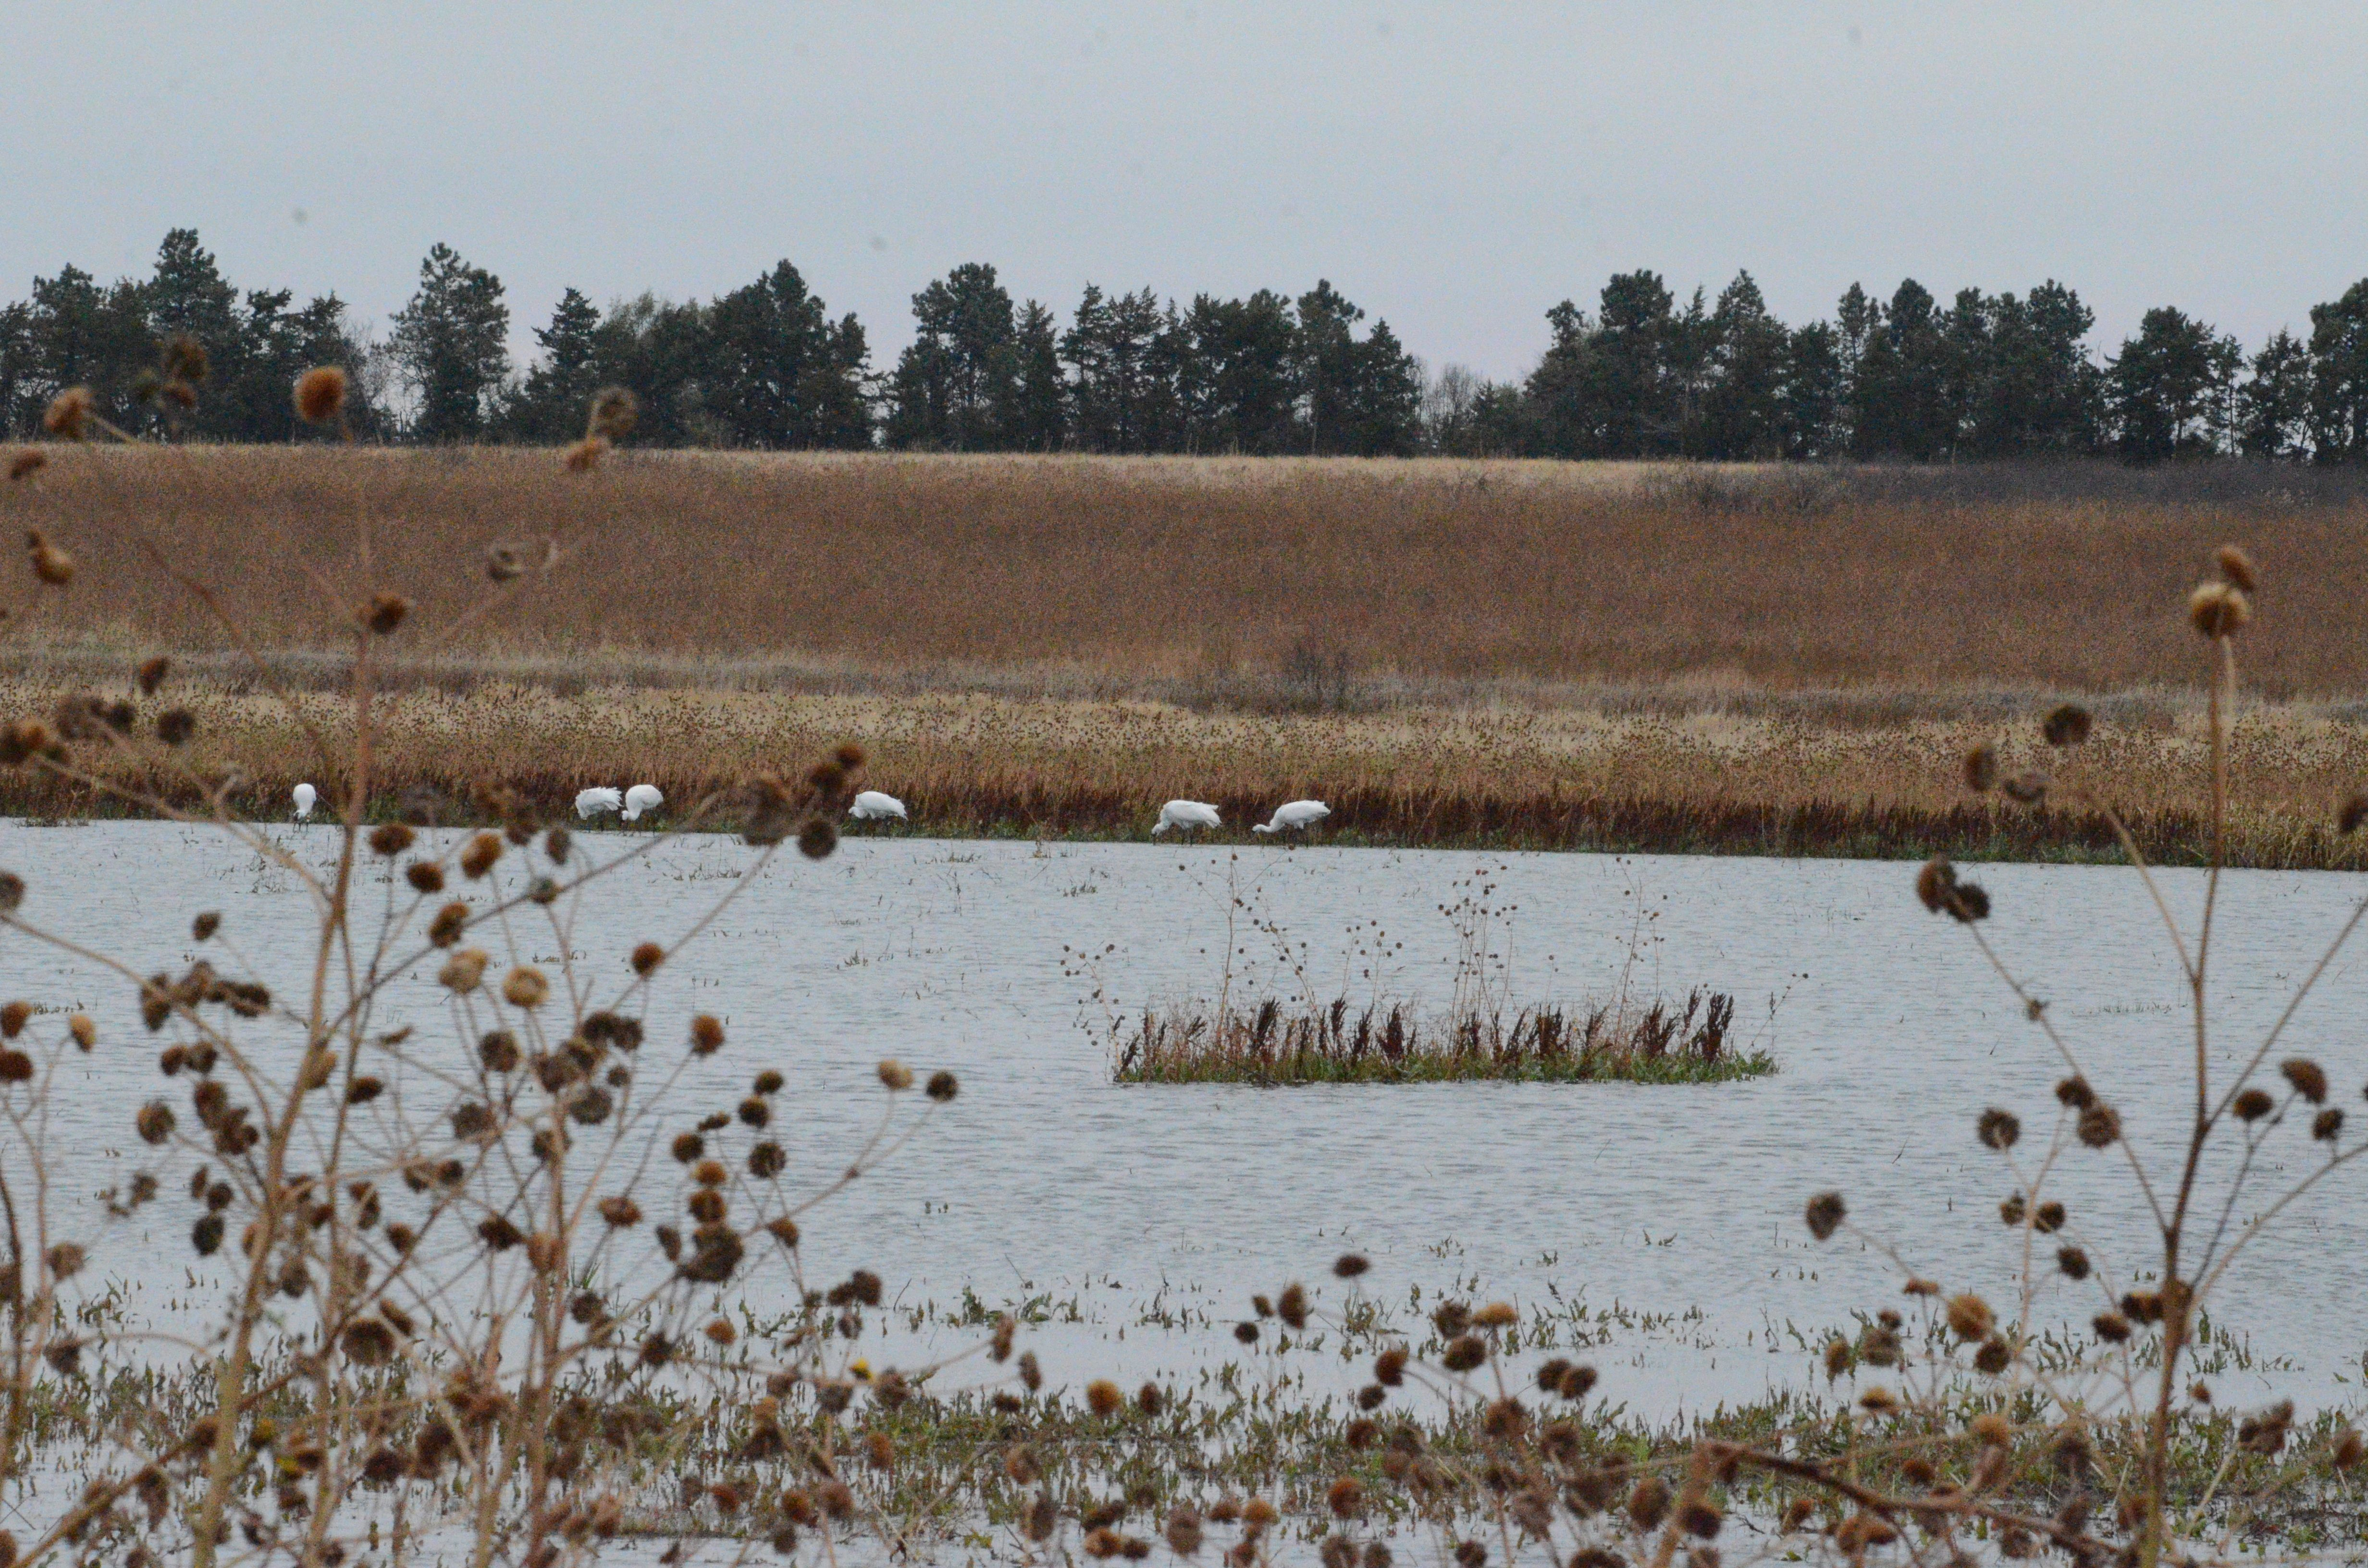 The Importance of Wetland Habitats for Whooping Cranes during Migration: World Wetlands Day